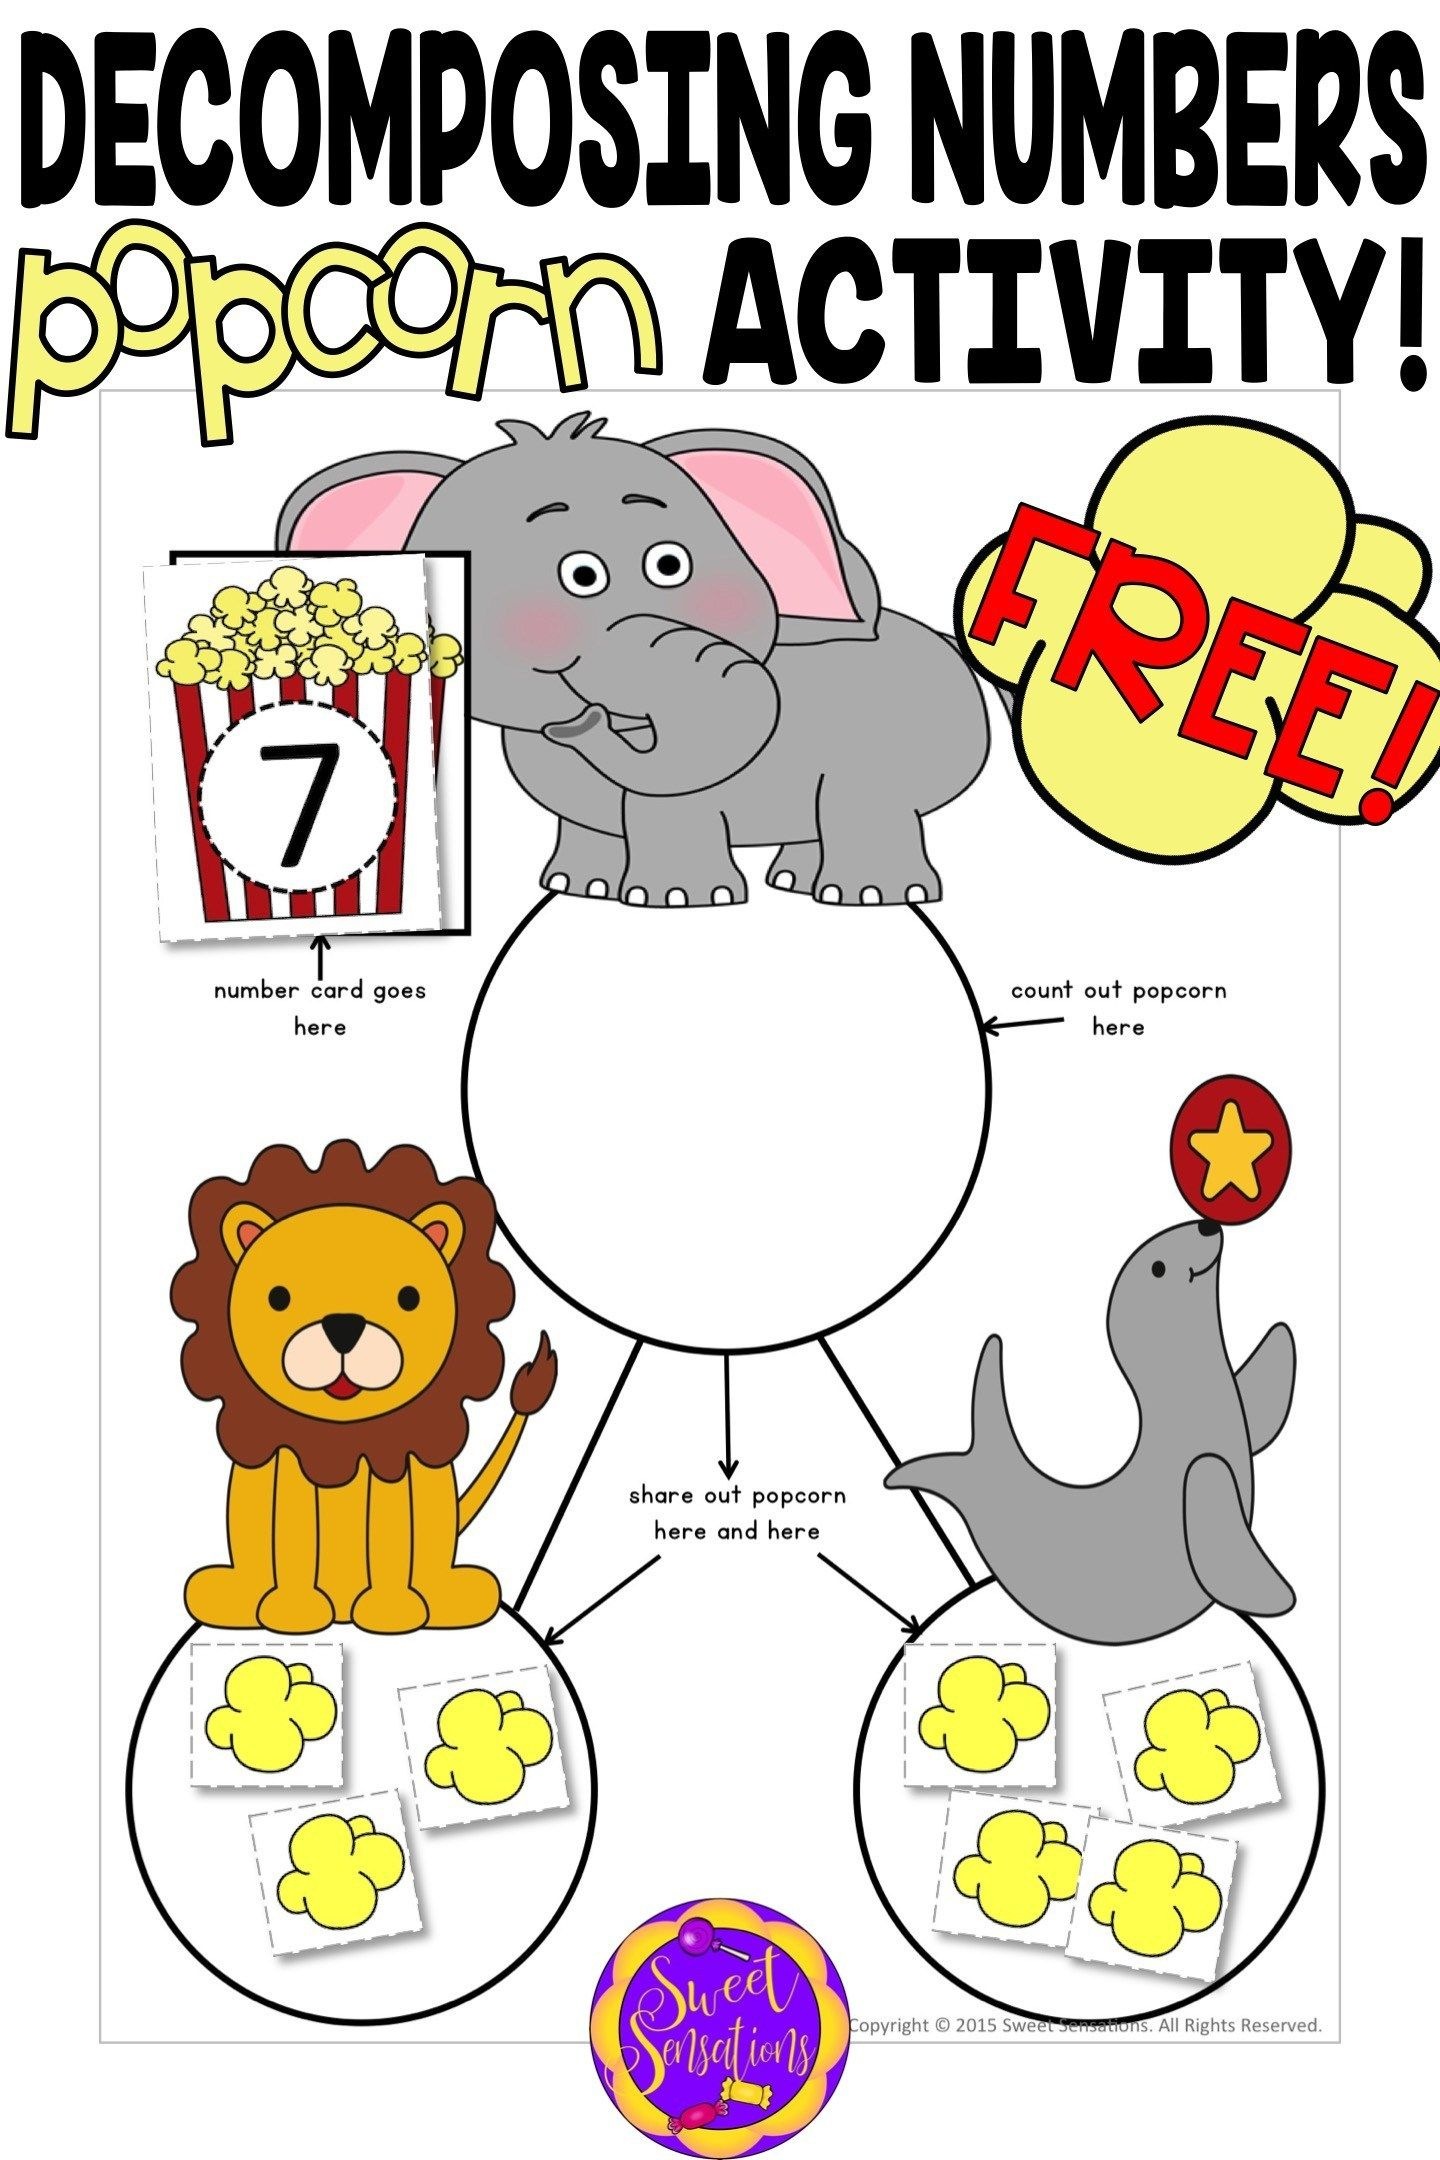 Use These Fun Free Downloads And Popcorn To Introduce Your